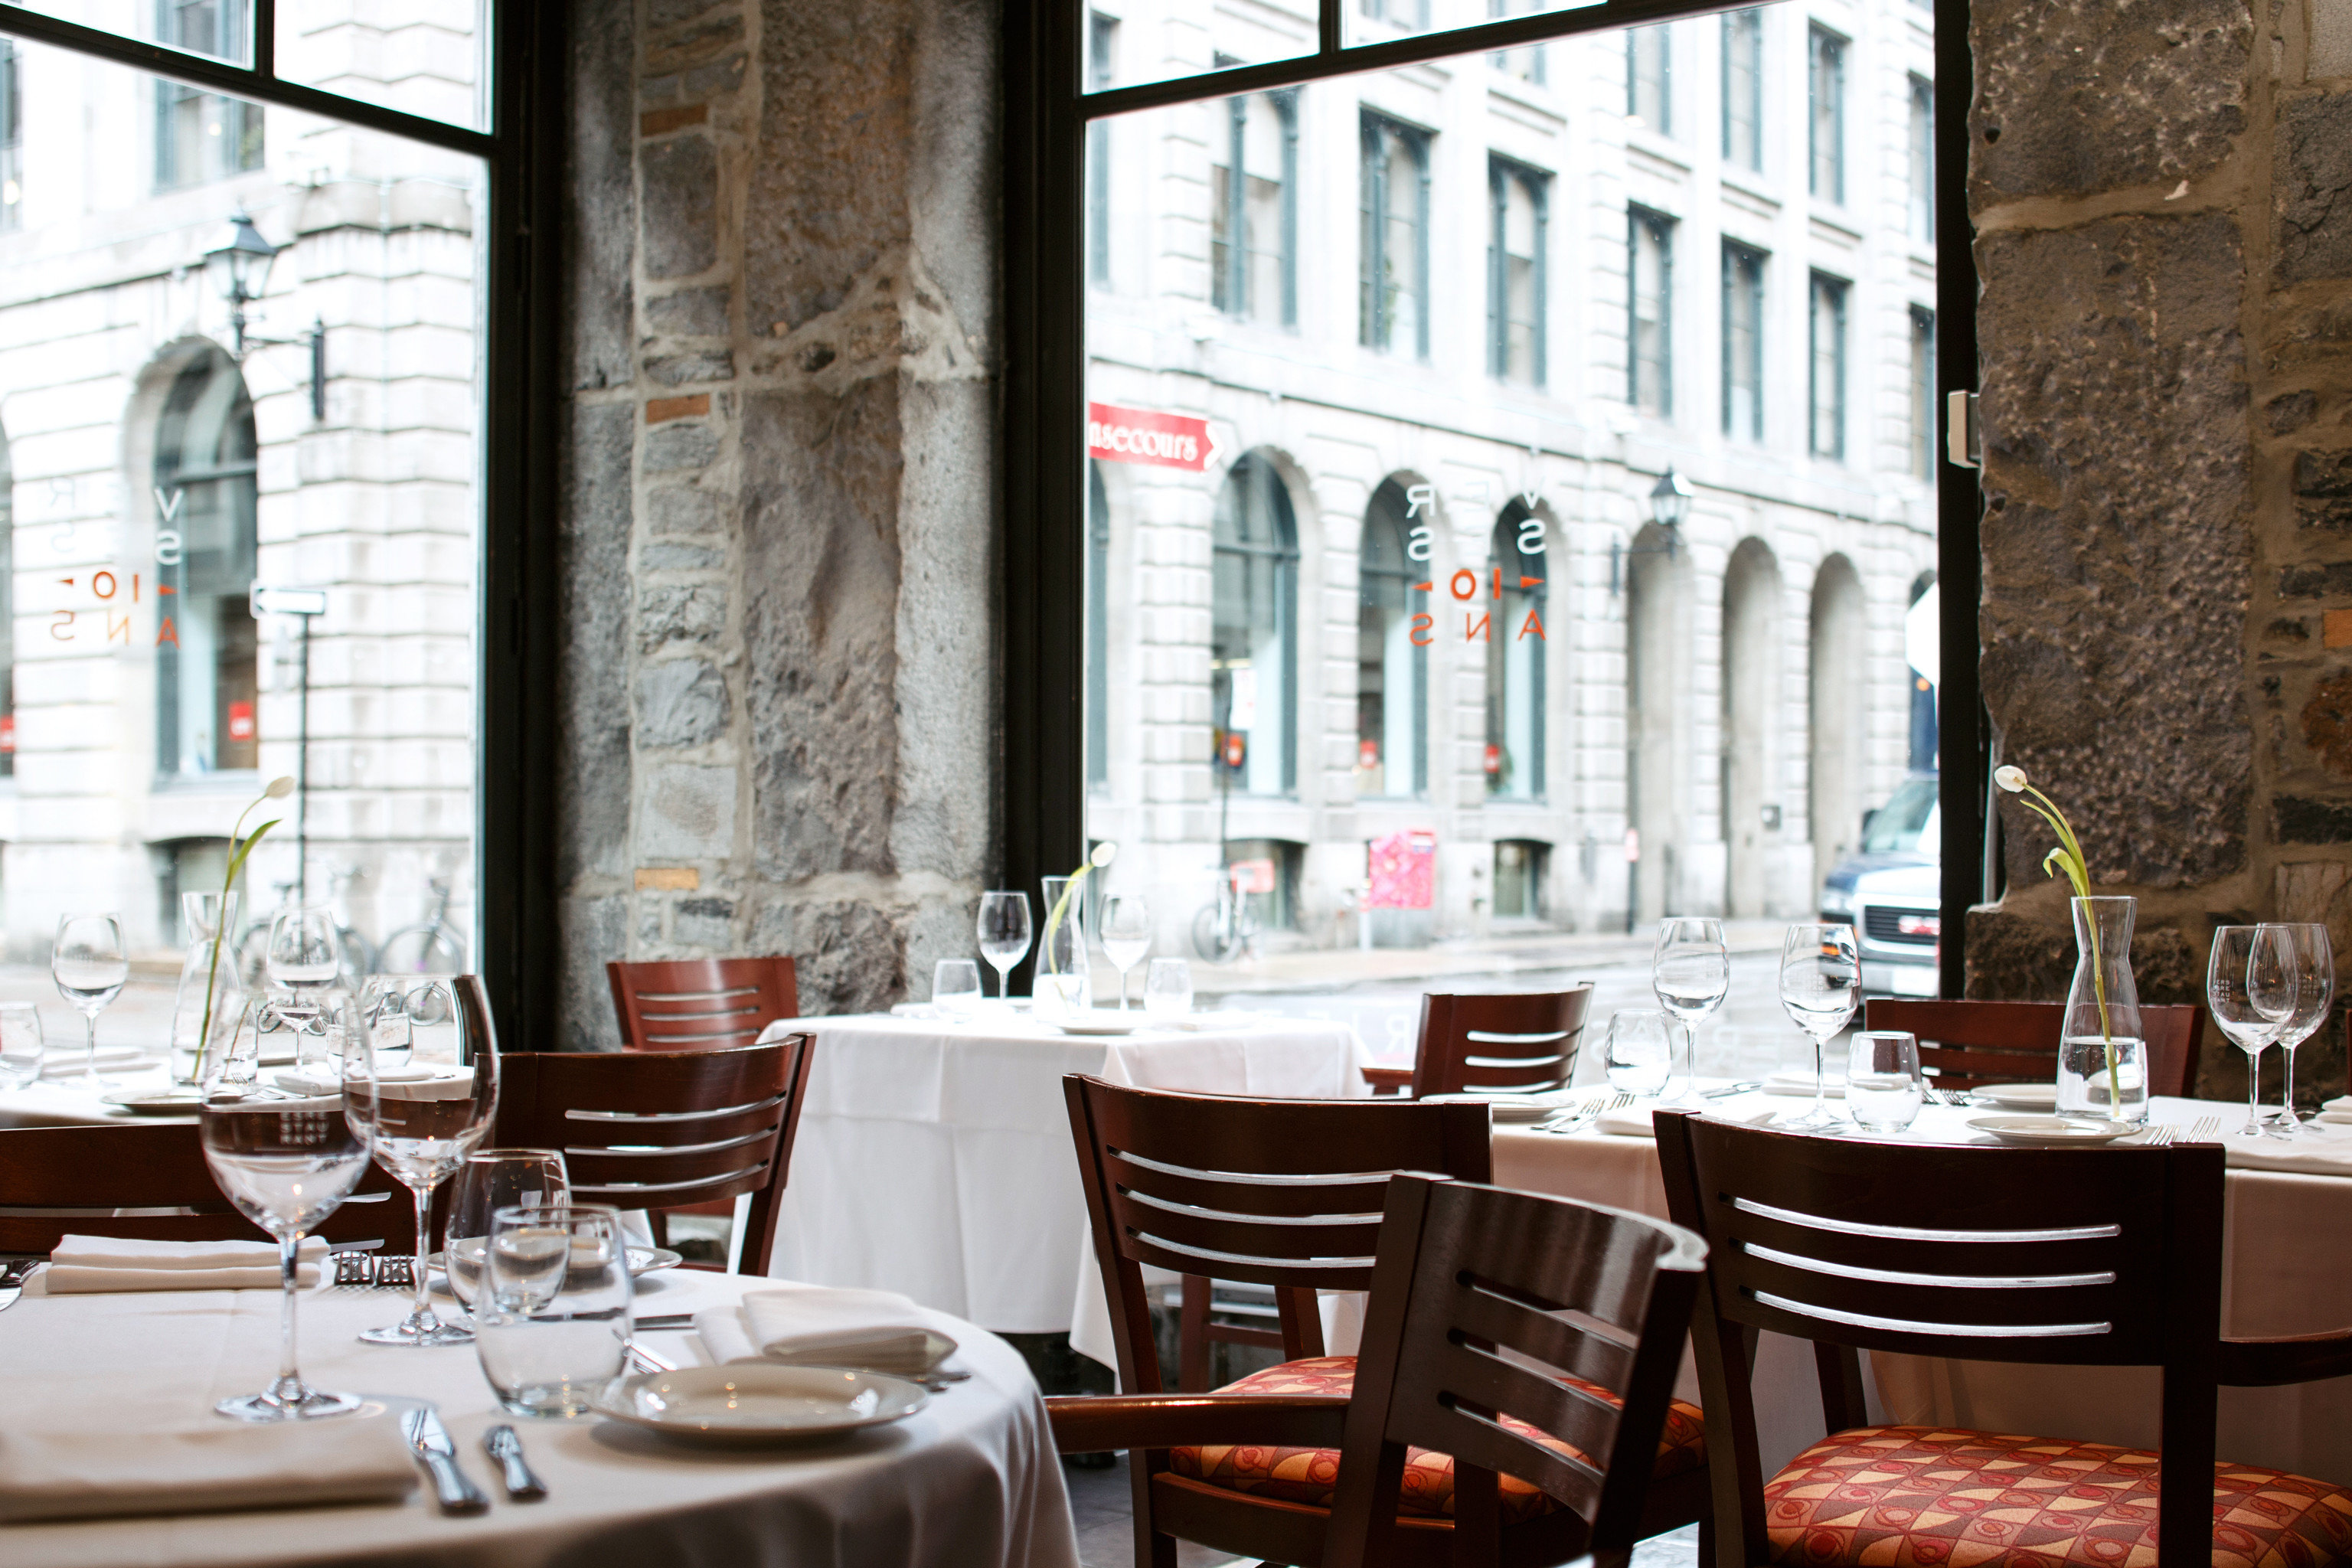 Canada Classic Dining Drink Eat Elegant Hotels Luxury Montreal Trip Ideas building chair restaurant